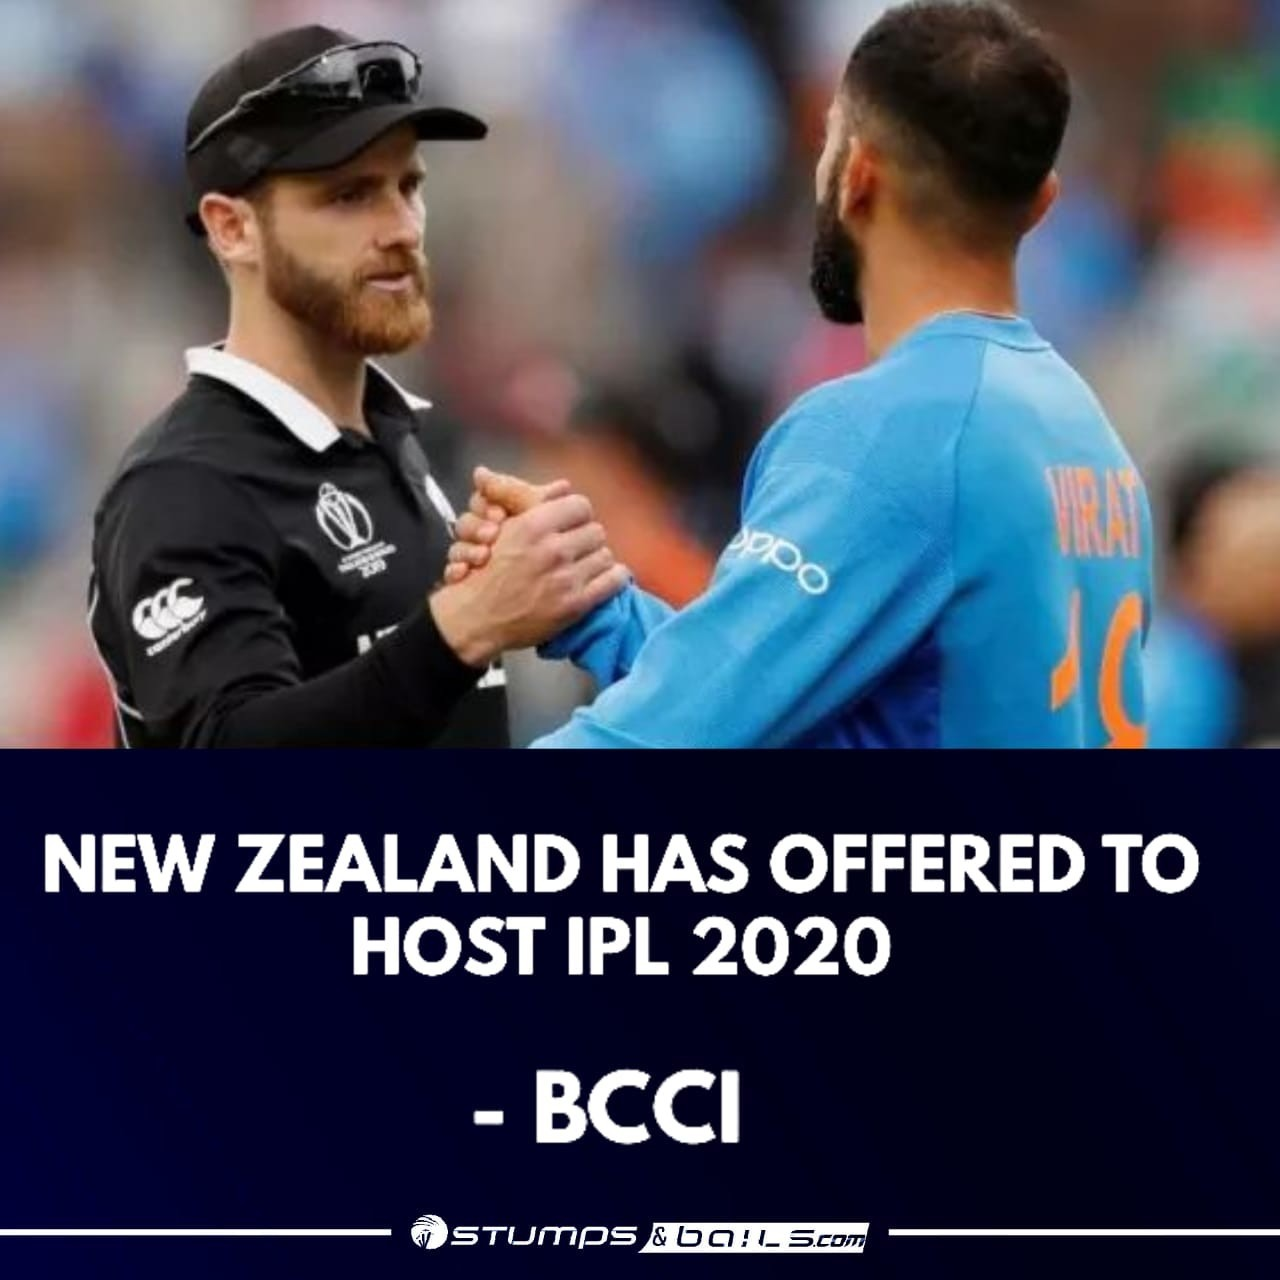 New Zealand Offers To Host IPL 2020 Season - Indian Premier League